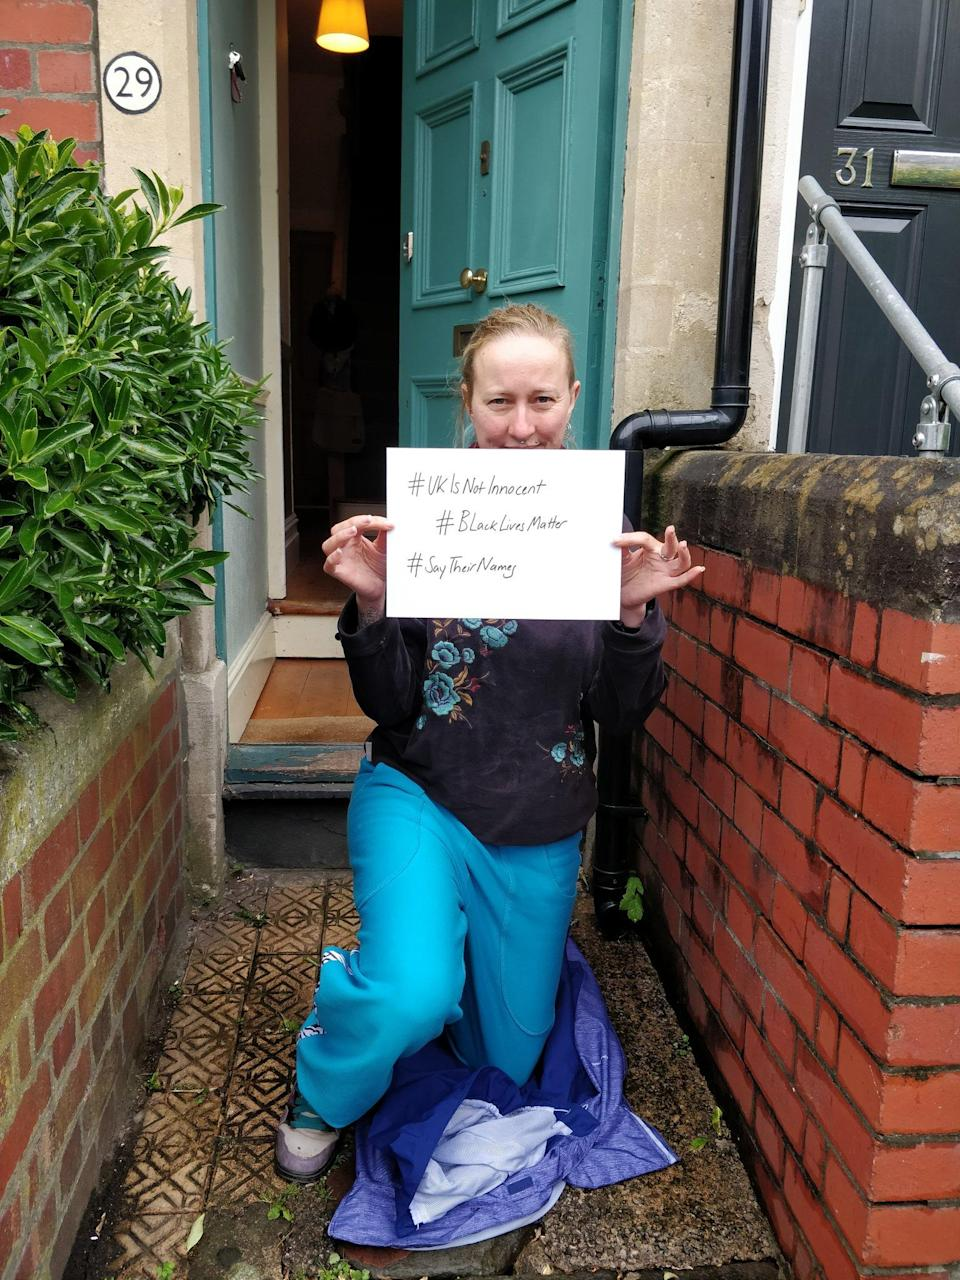 Johanna joined the tributes on her doorstep in Bristol (PA)